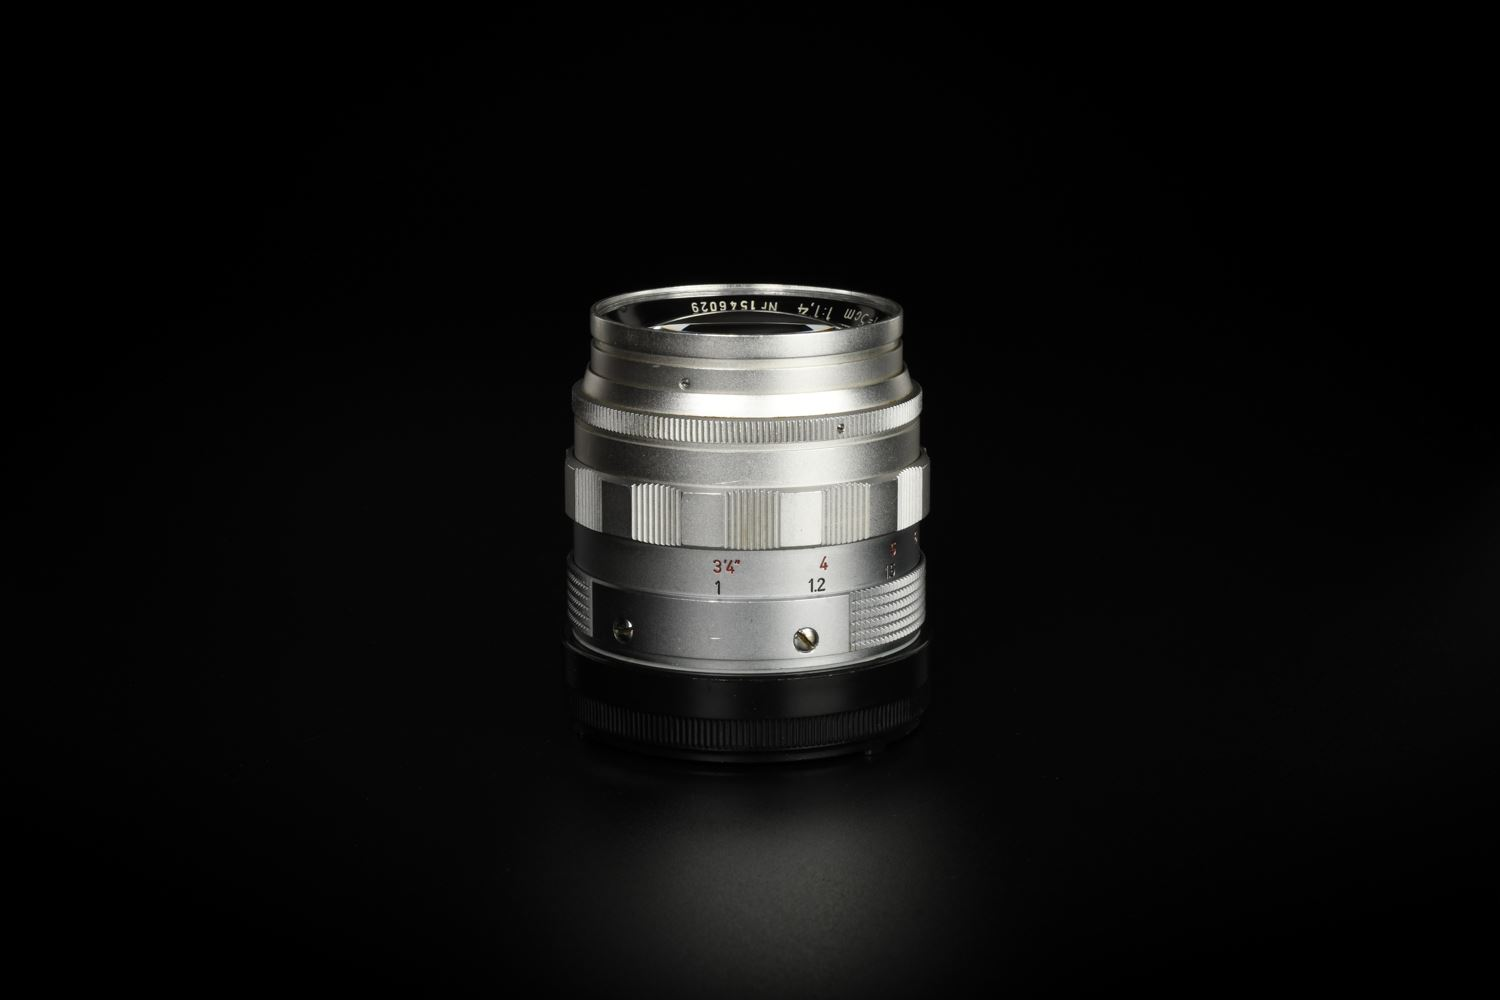 Picture of Leica Summarit 5cm f/1.4 Prototype